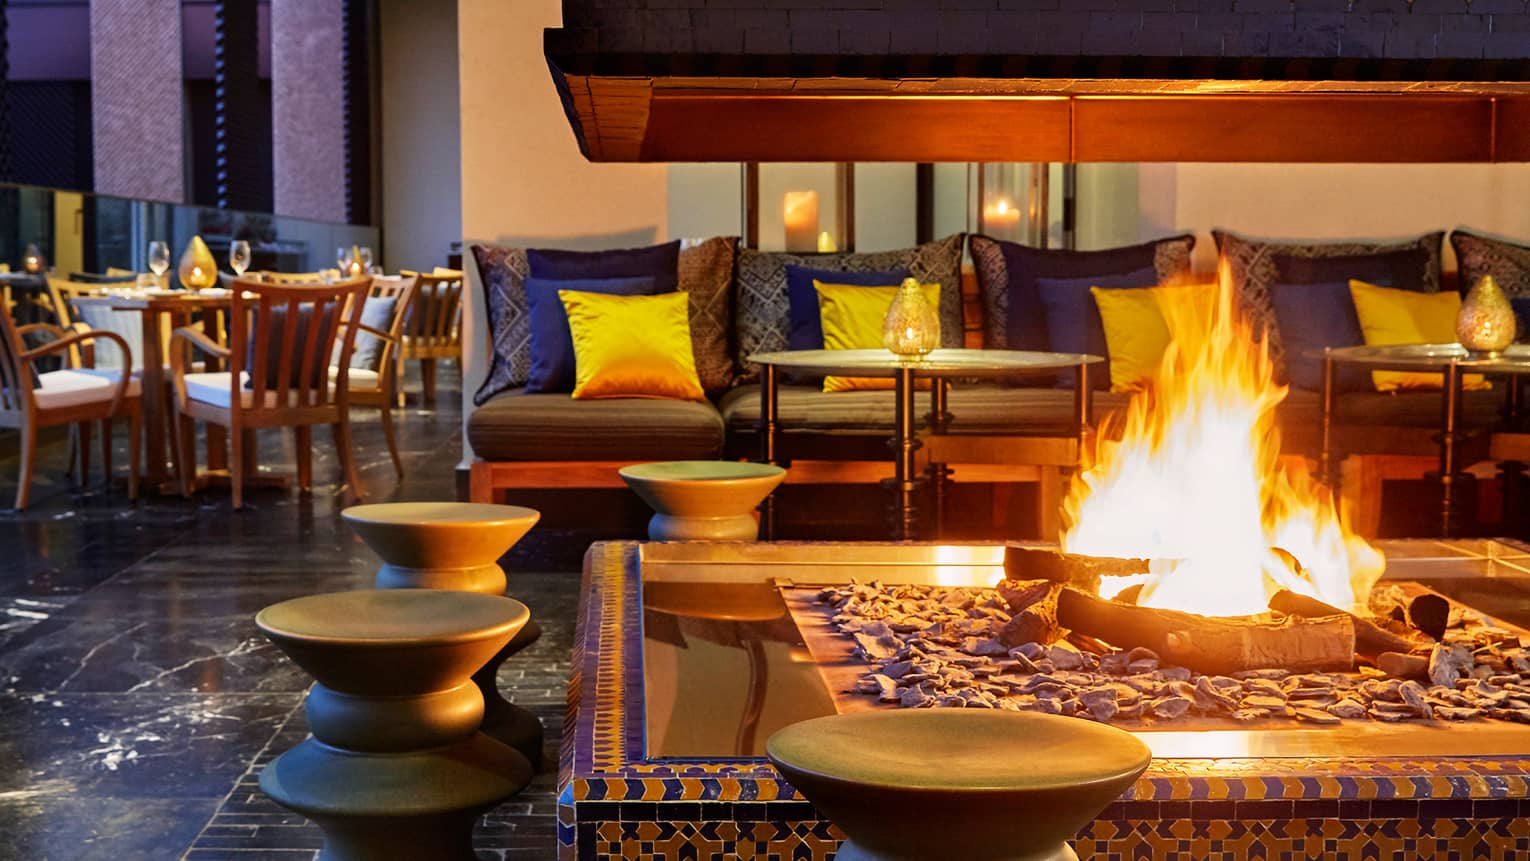 Outdoor fireplace in front of patio benches, pillows on Mint restaurant terrace